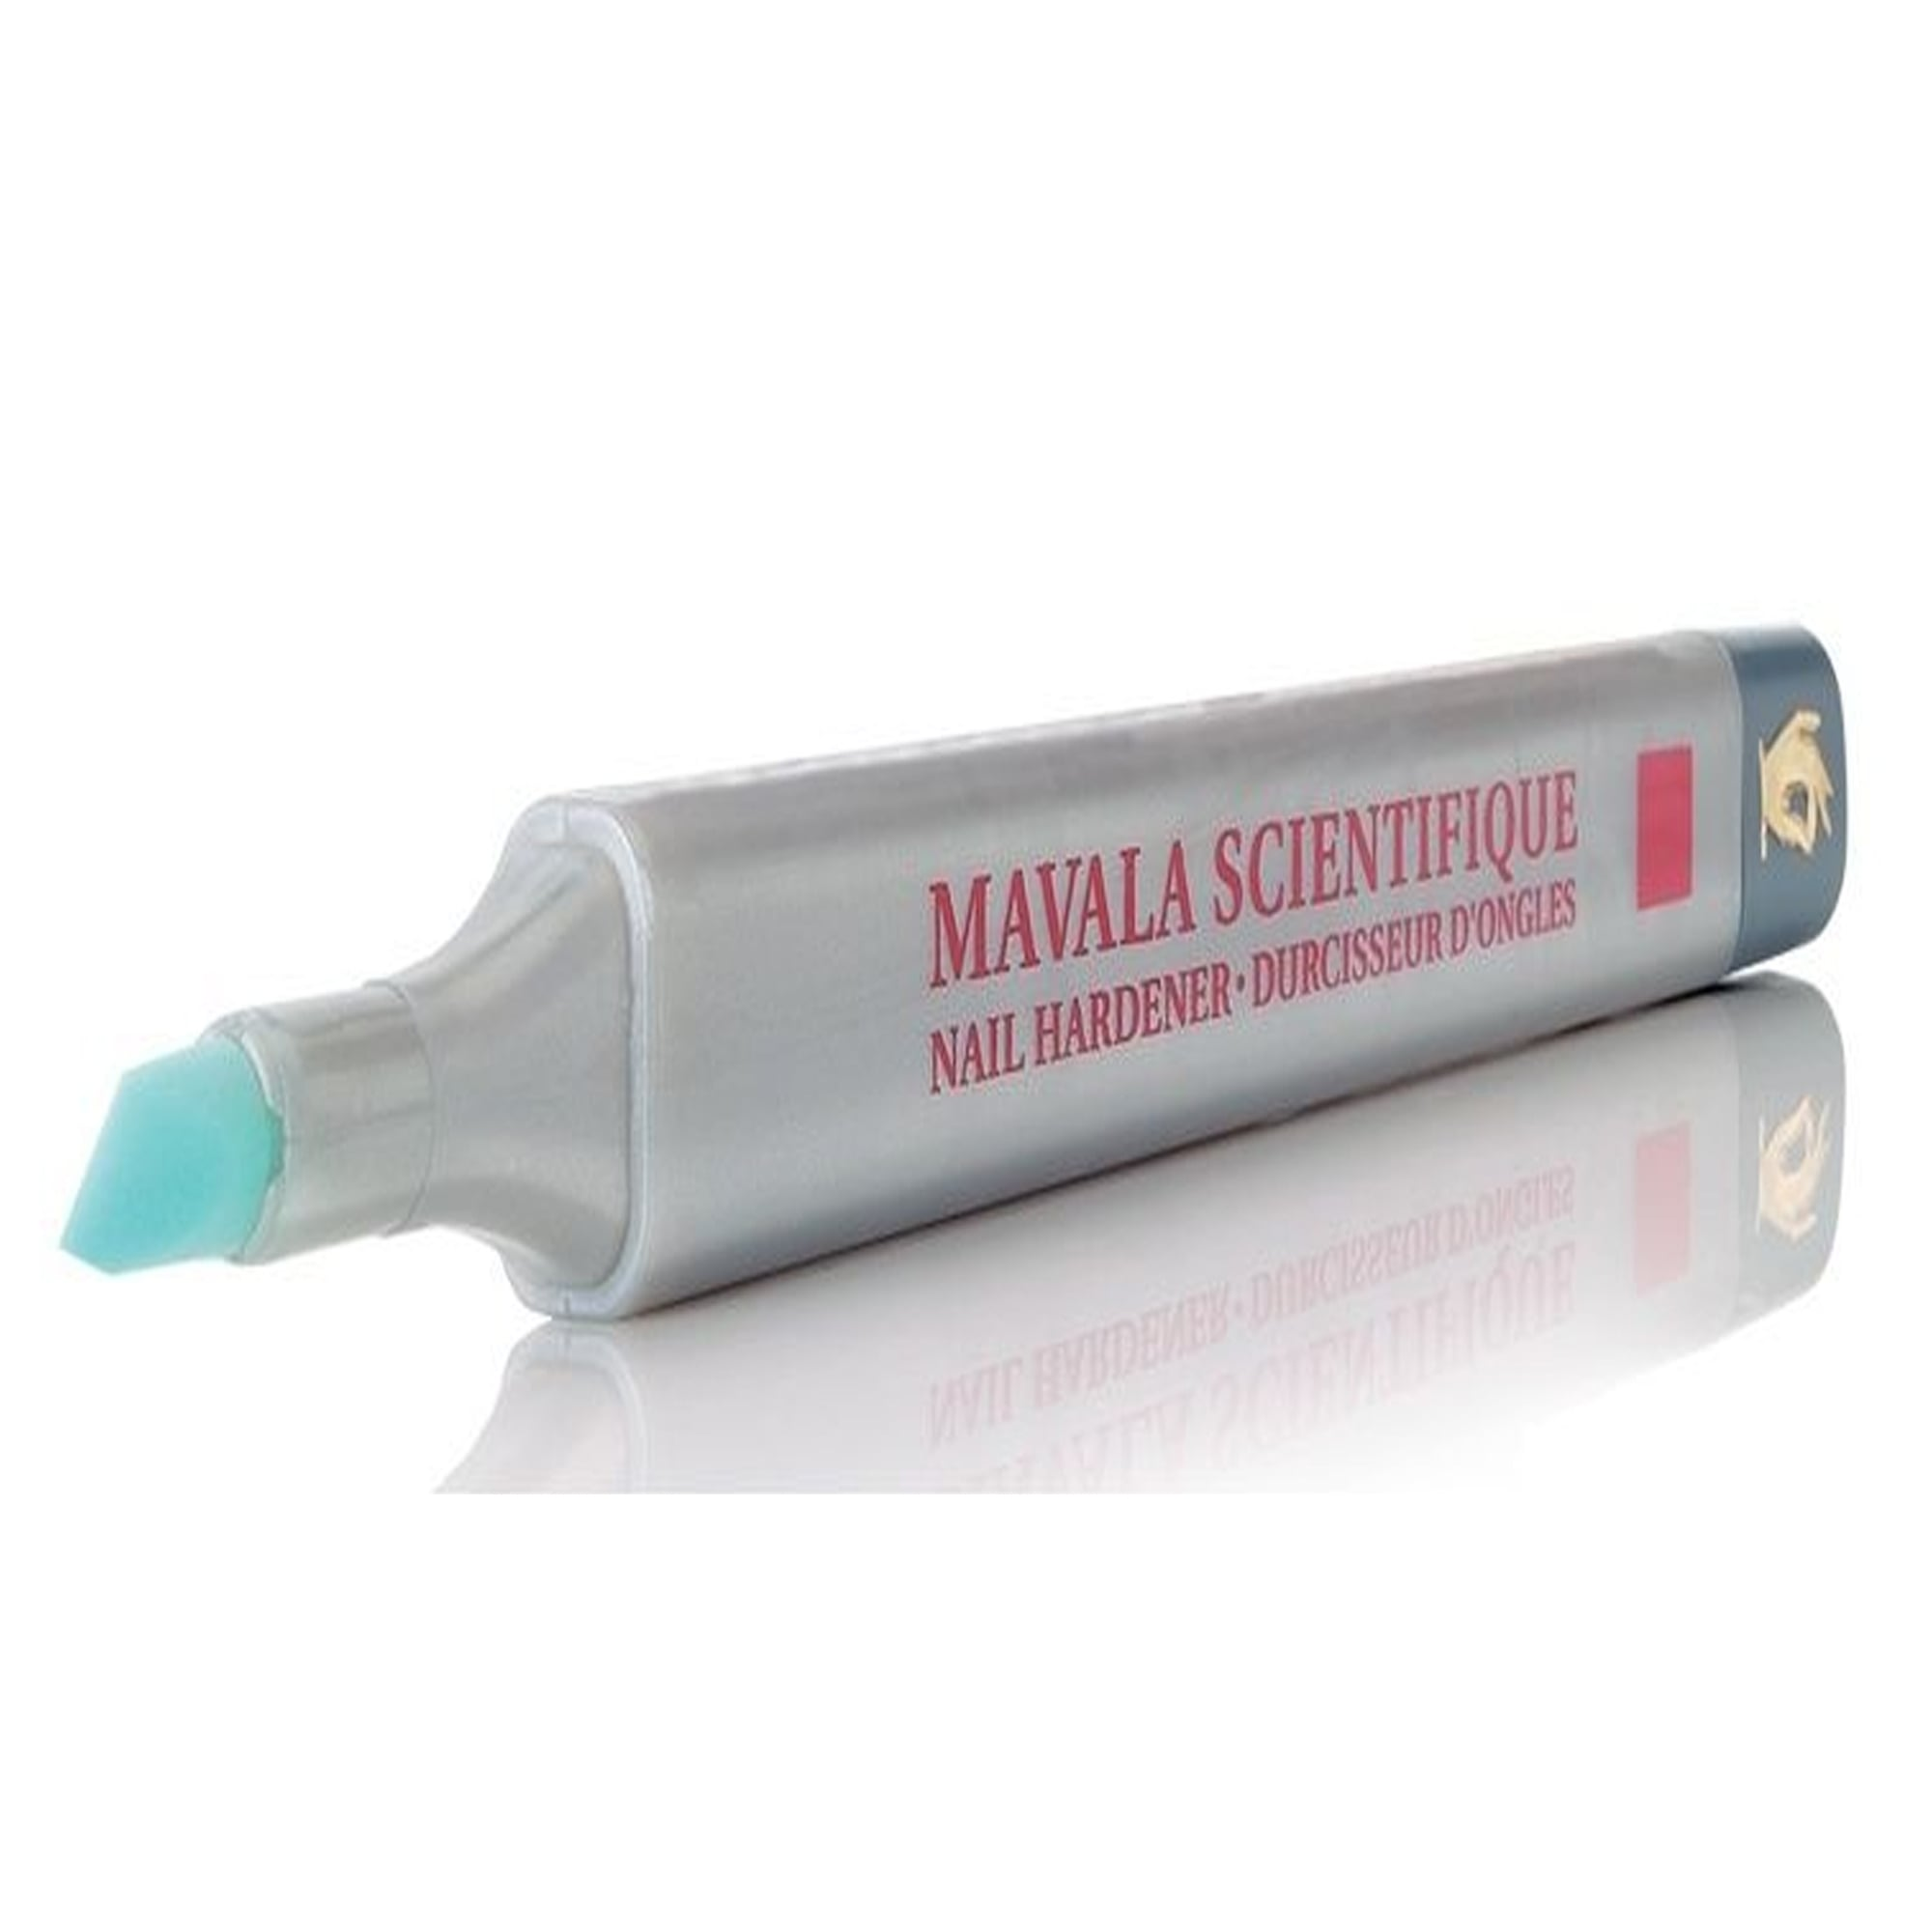 Mavala Scientifique Nail Hardener Pen Applicator 3.5ml